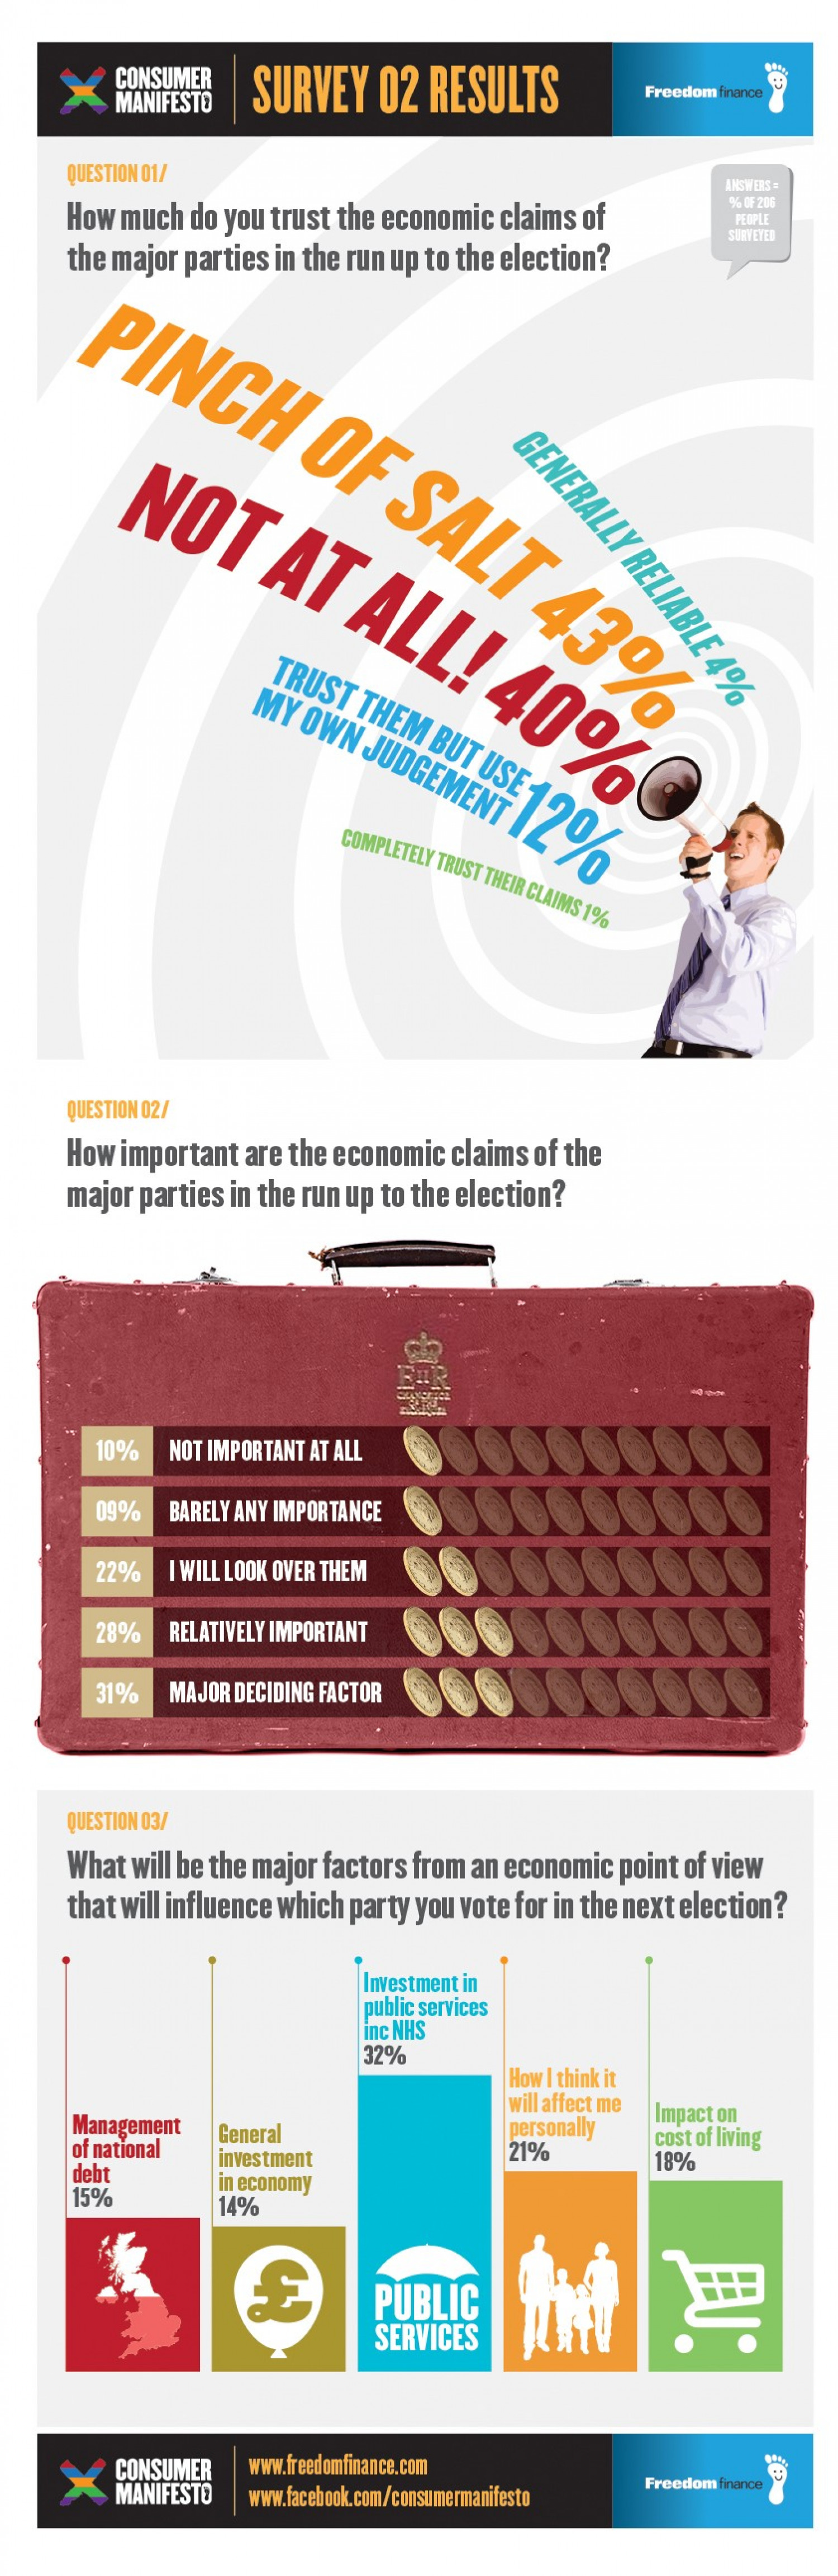 Freedom Finance Consumer Manifesto – The Economy Survey Results Infographic